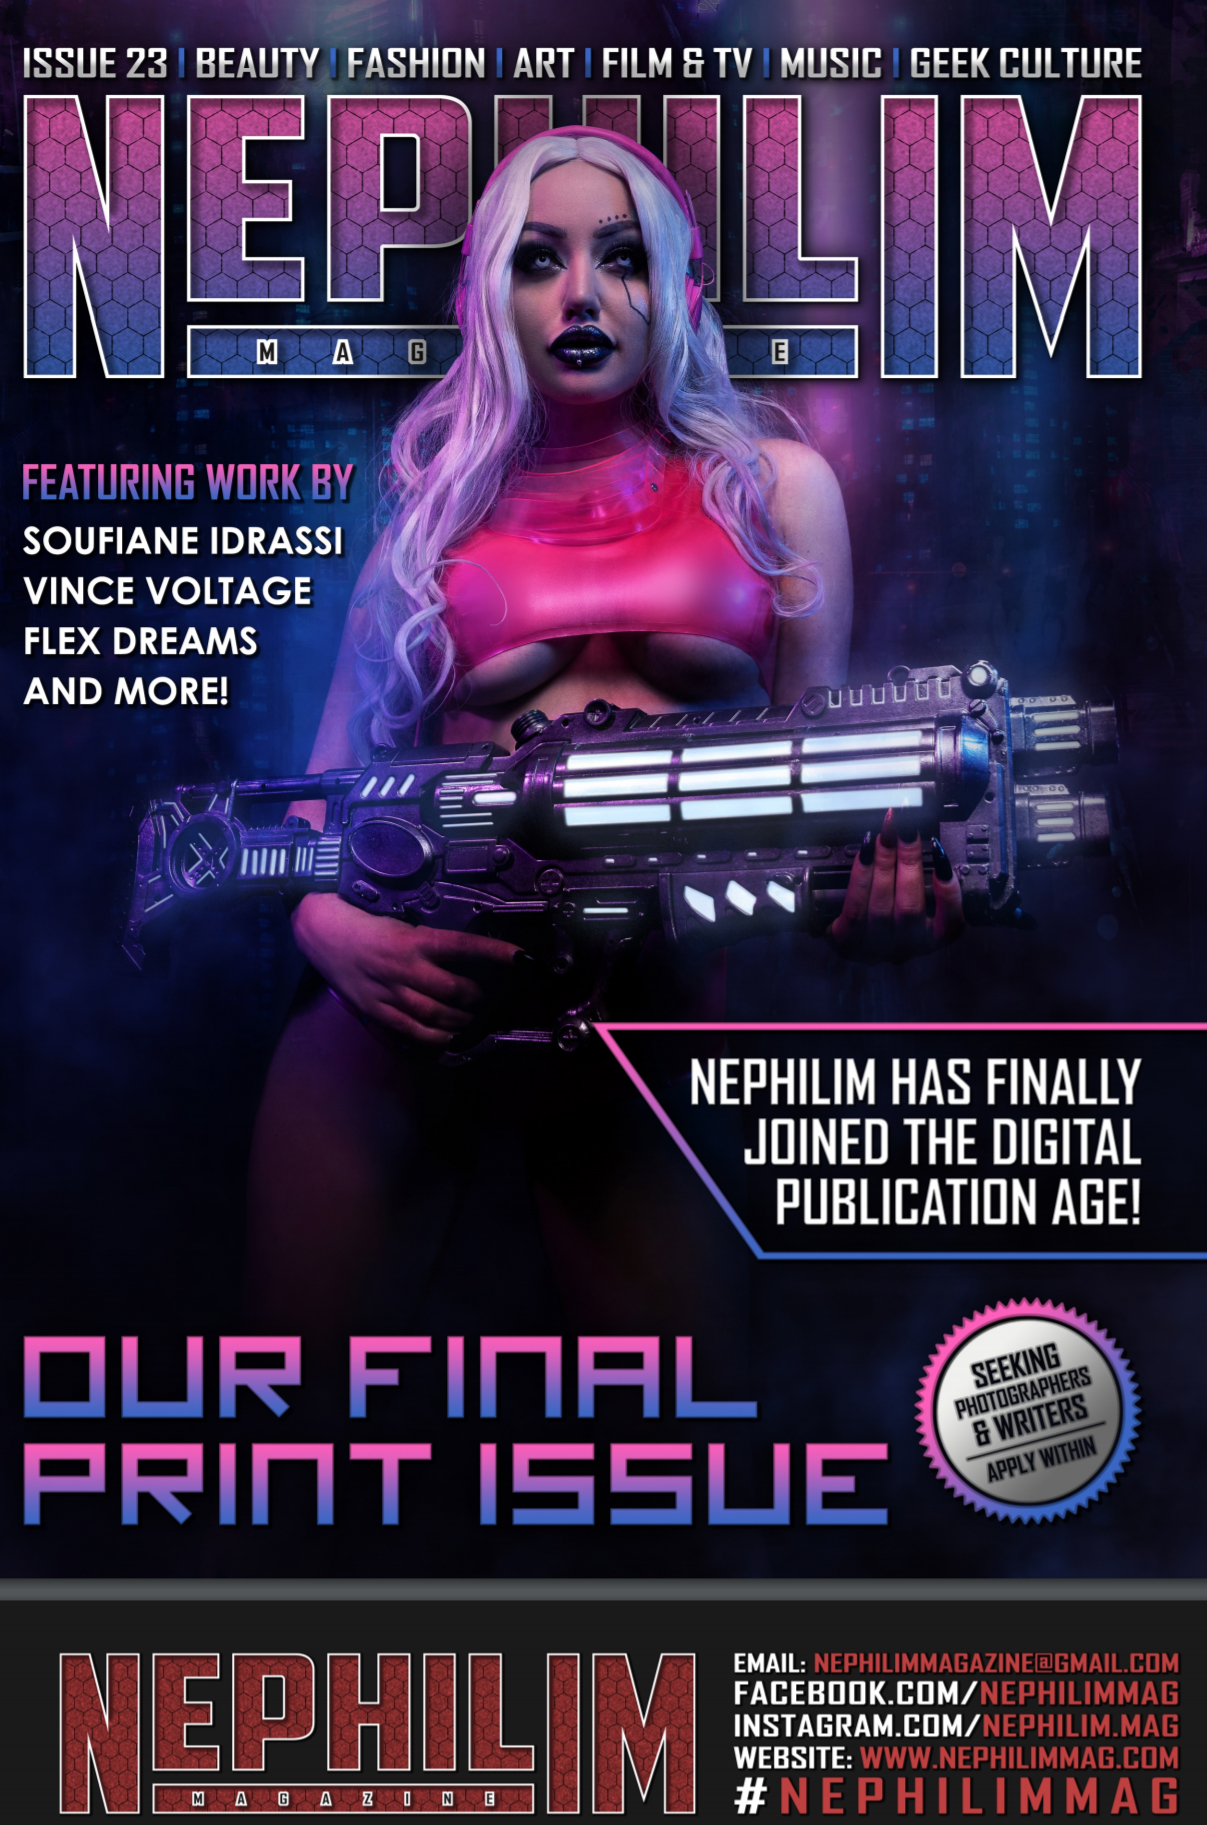 Nephilim March 2020 Cover